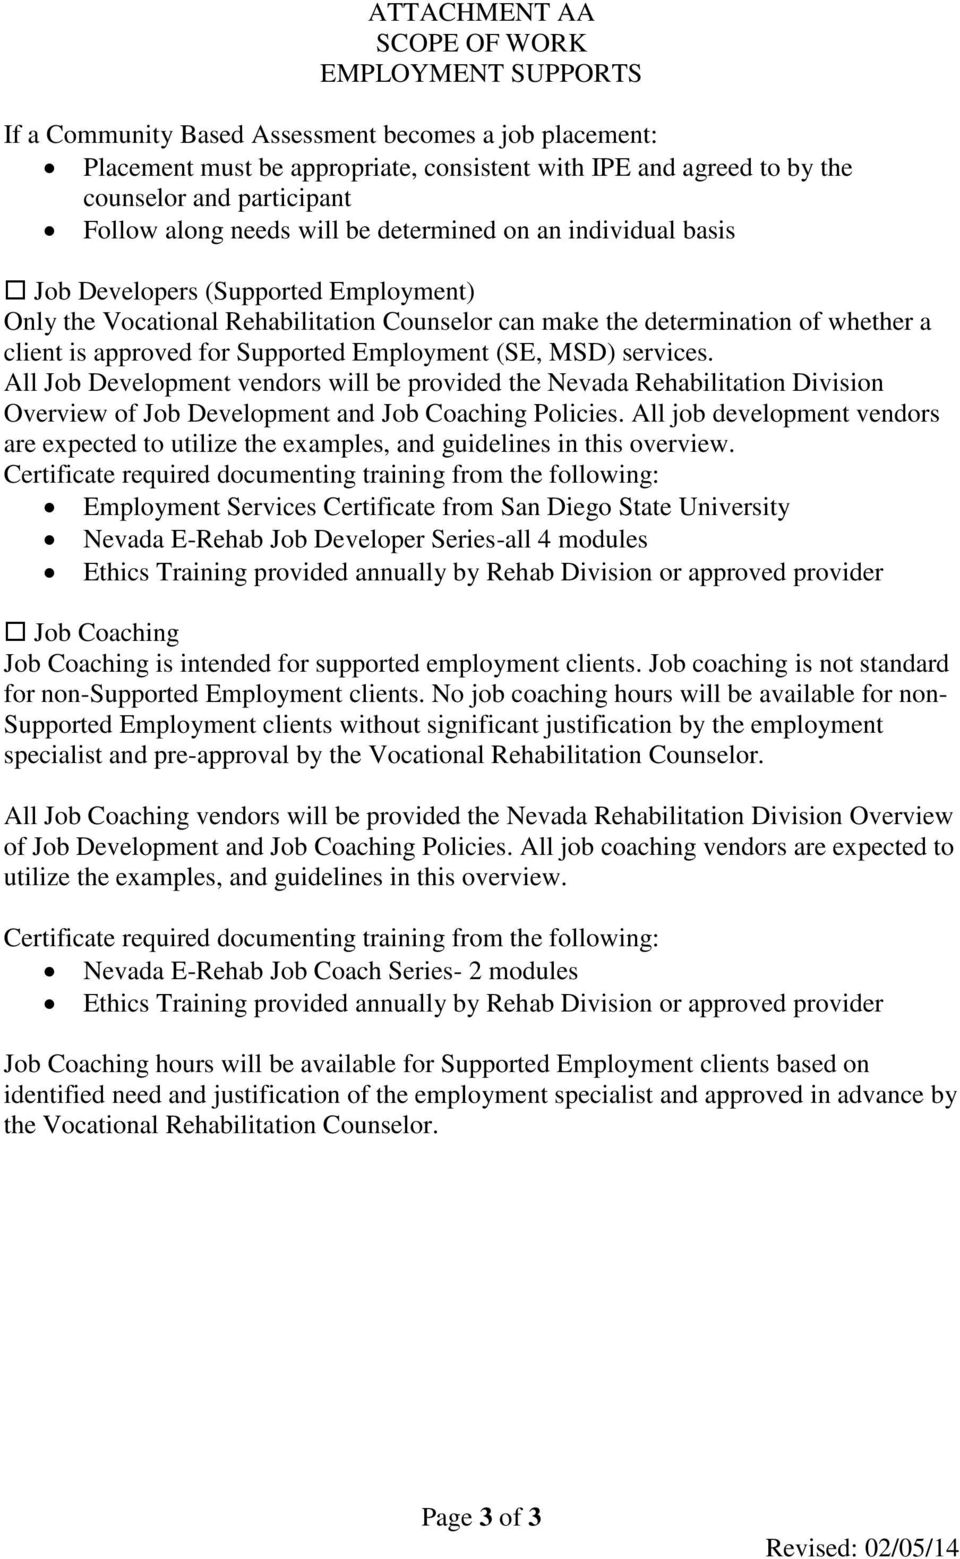 Supported Employment (SE, MSD) services. All Job Development vendors will be provided the Nevada Rehabilitation Division Overview of Job Development and Job Coaching Policies.